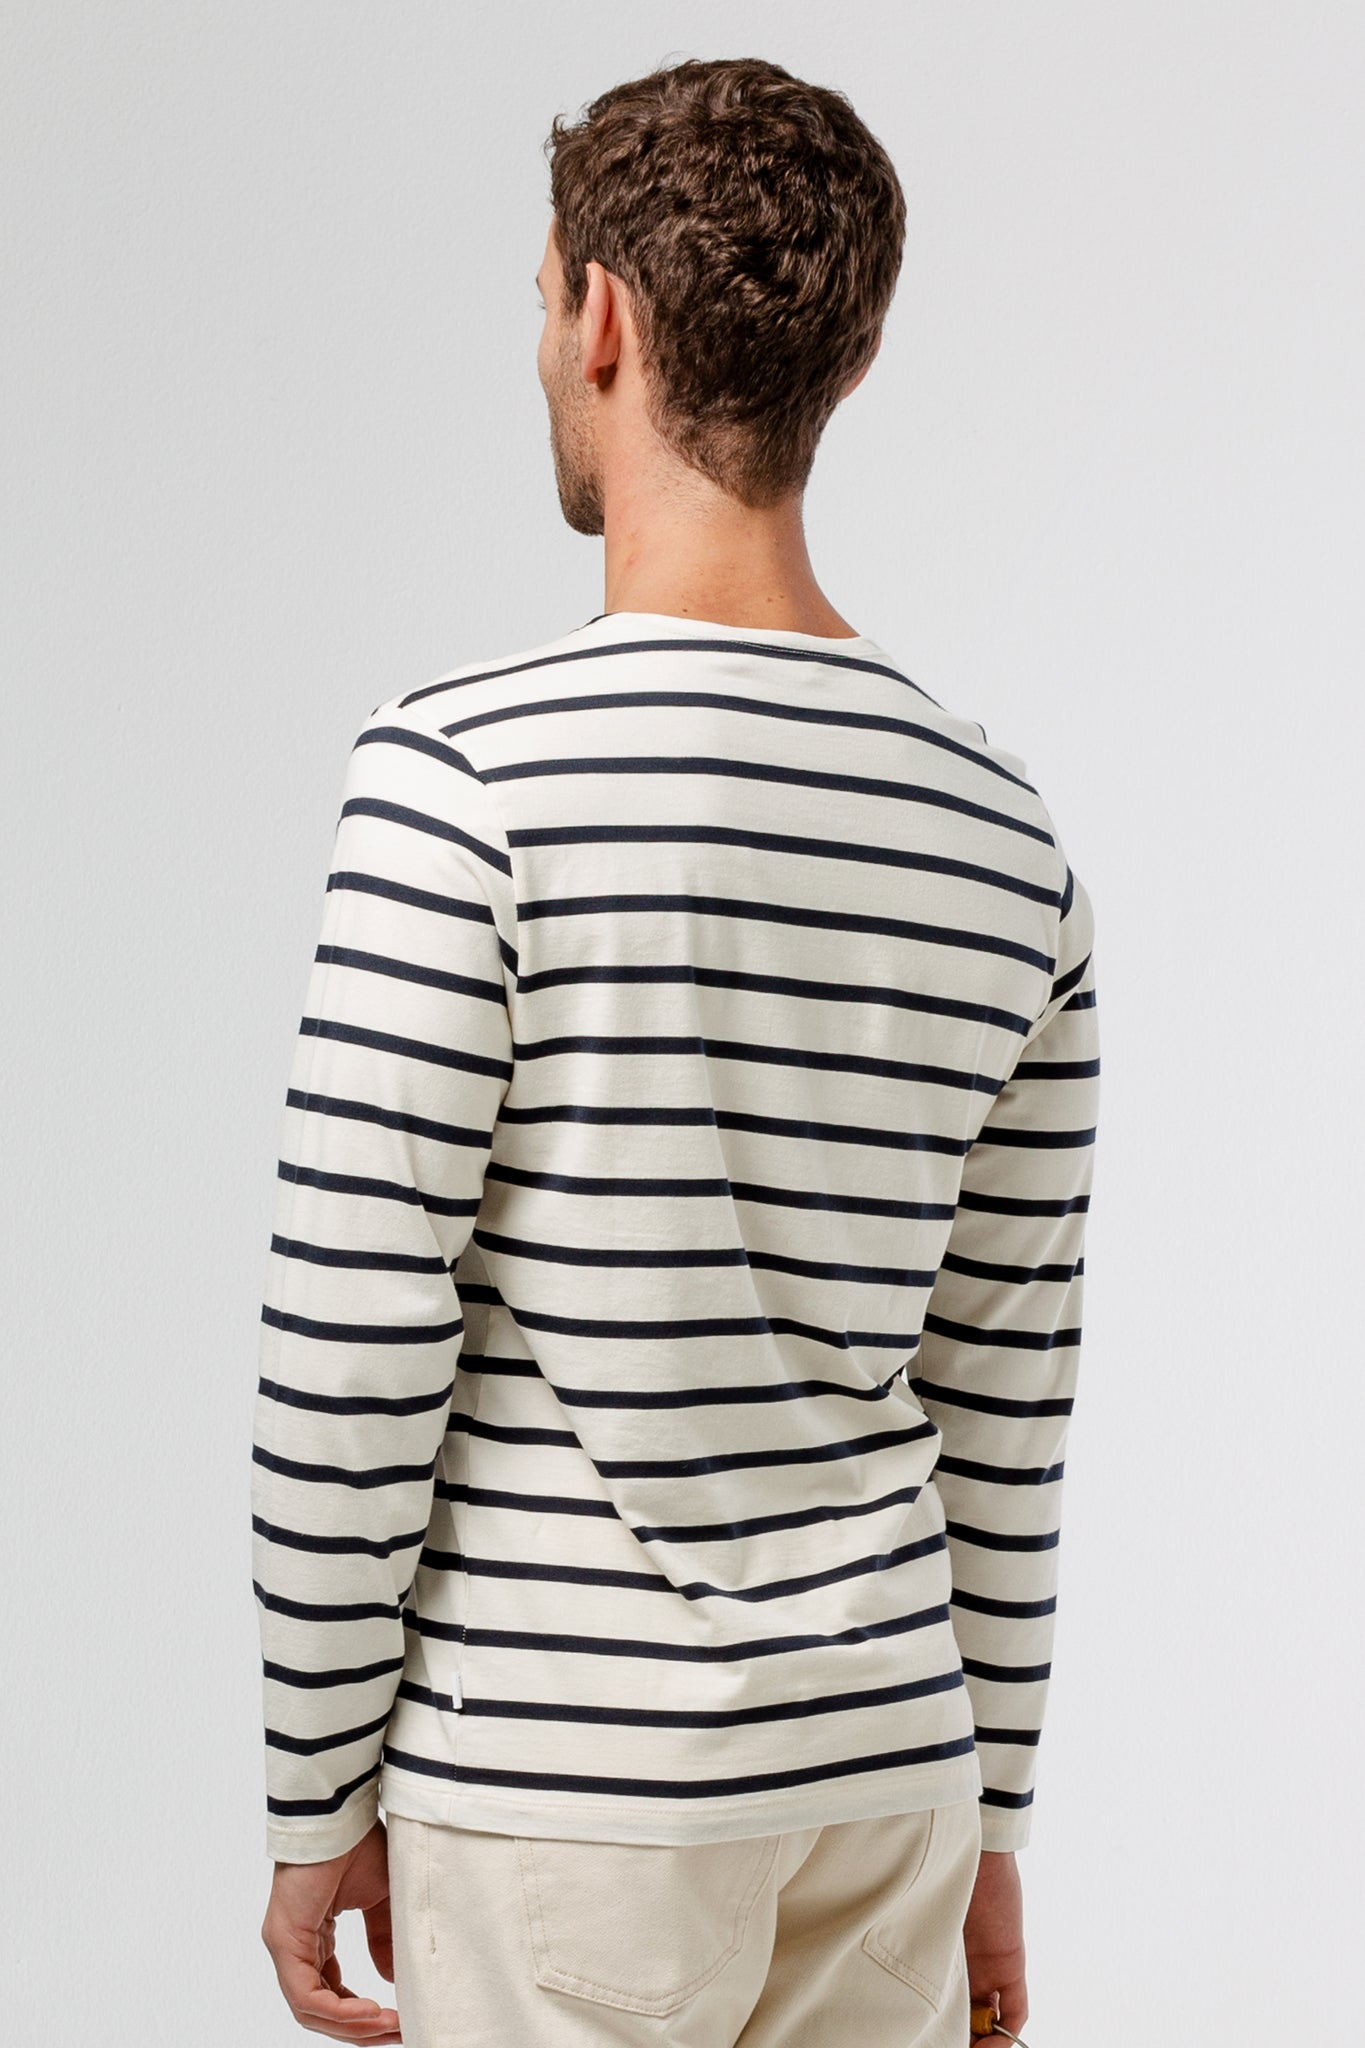 HORIZONTAL STRIPES NAVY